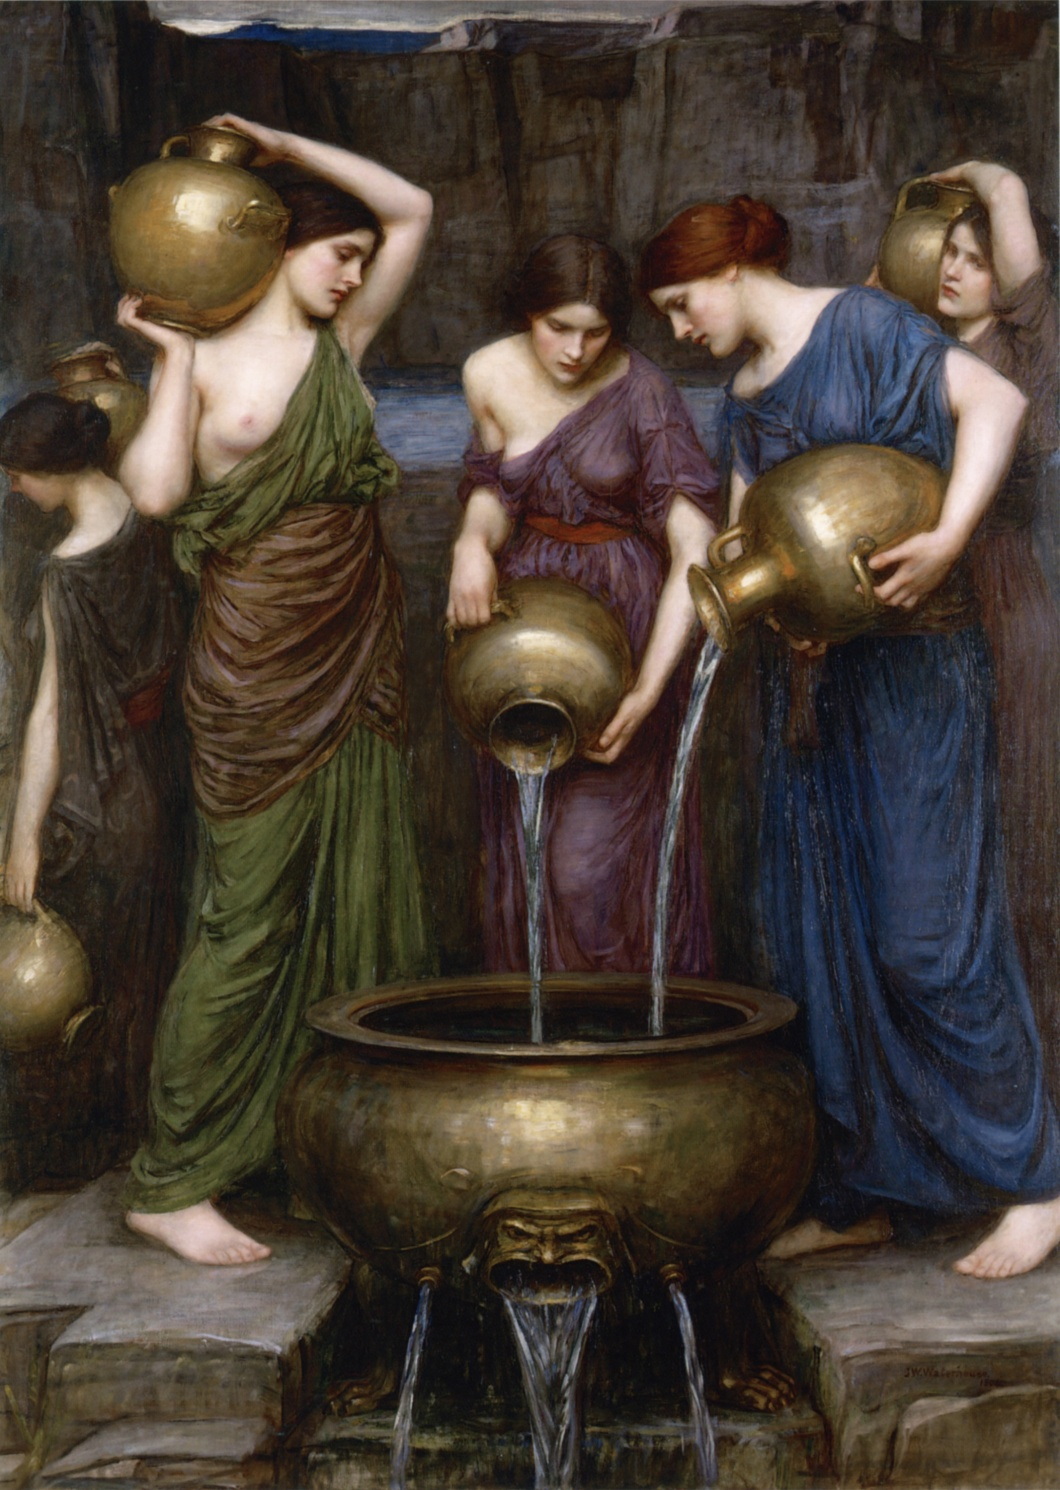 Danaides_by_John_William_Waterhouse,_1903